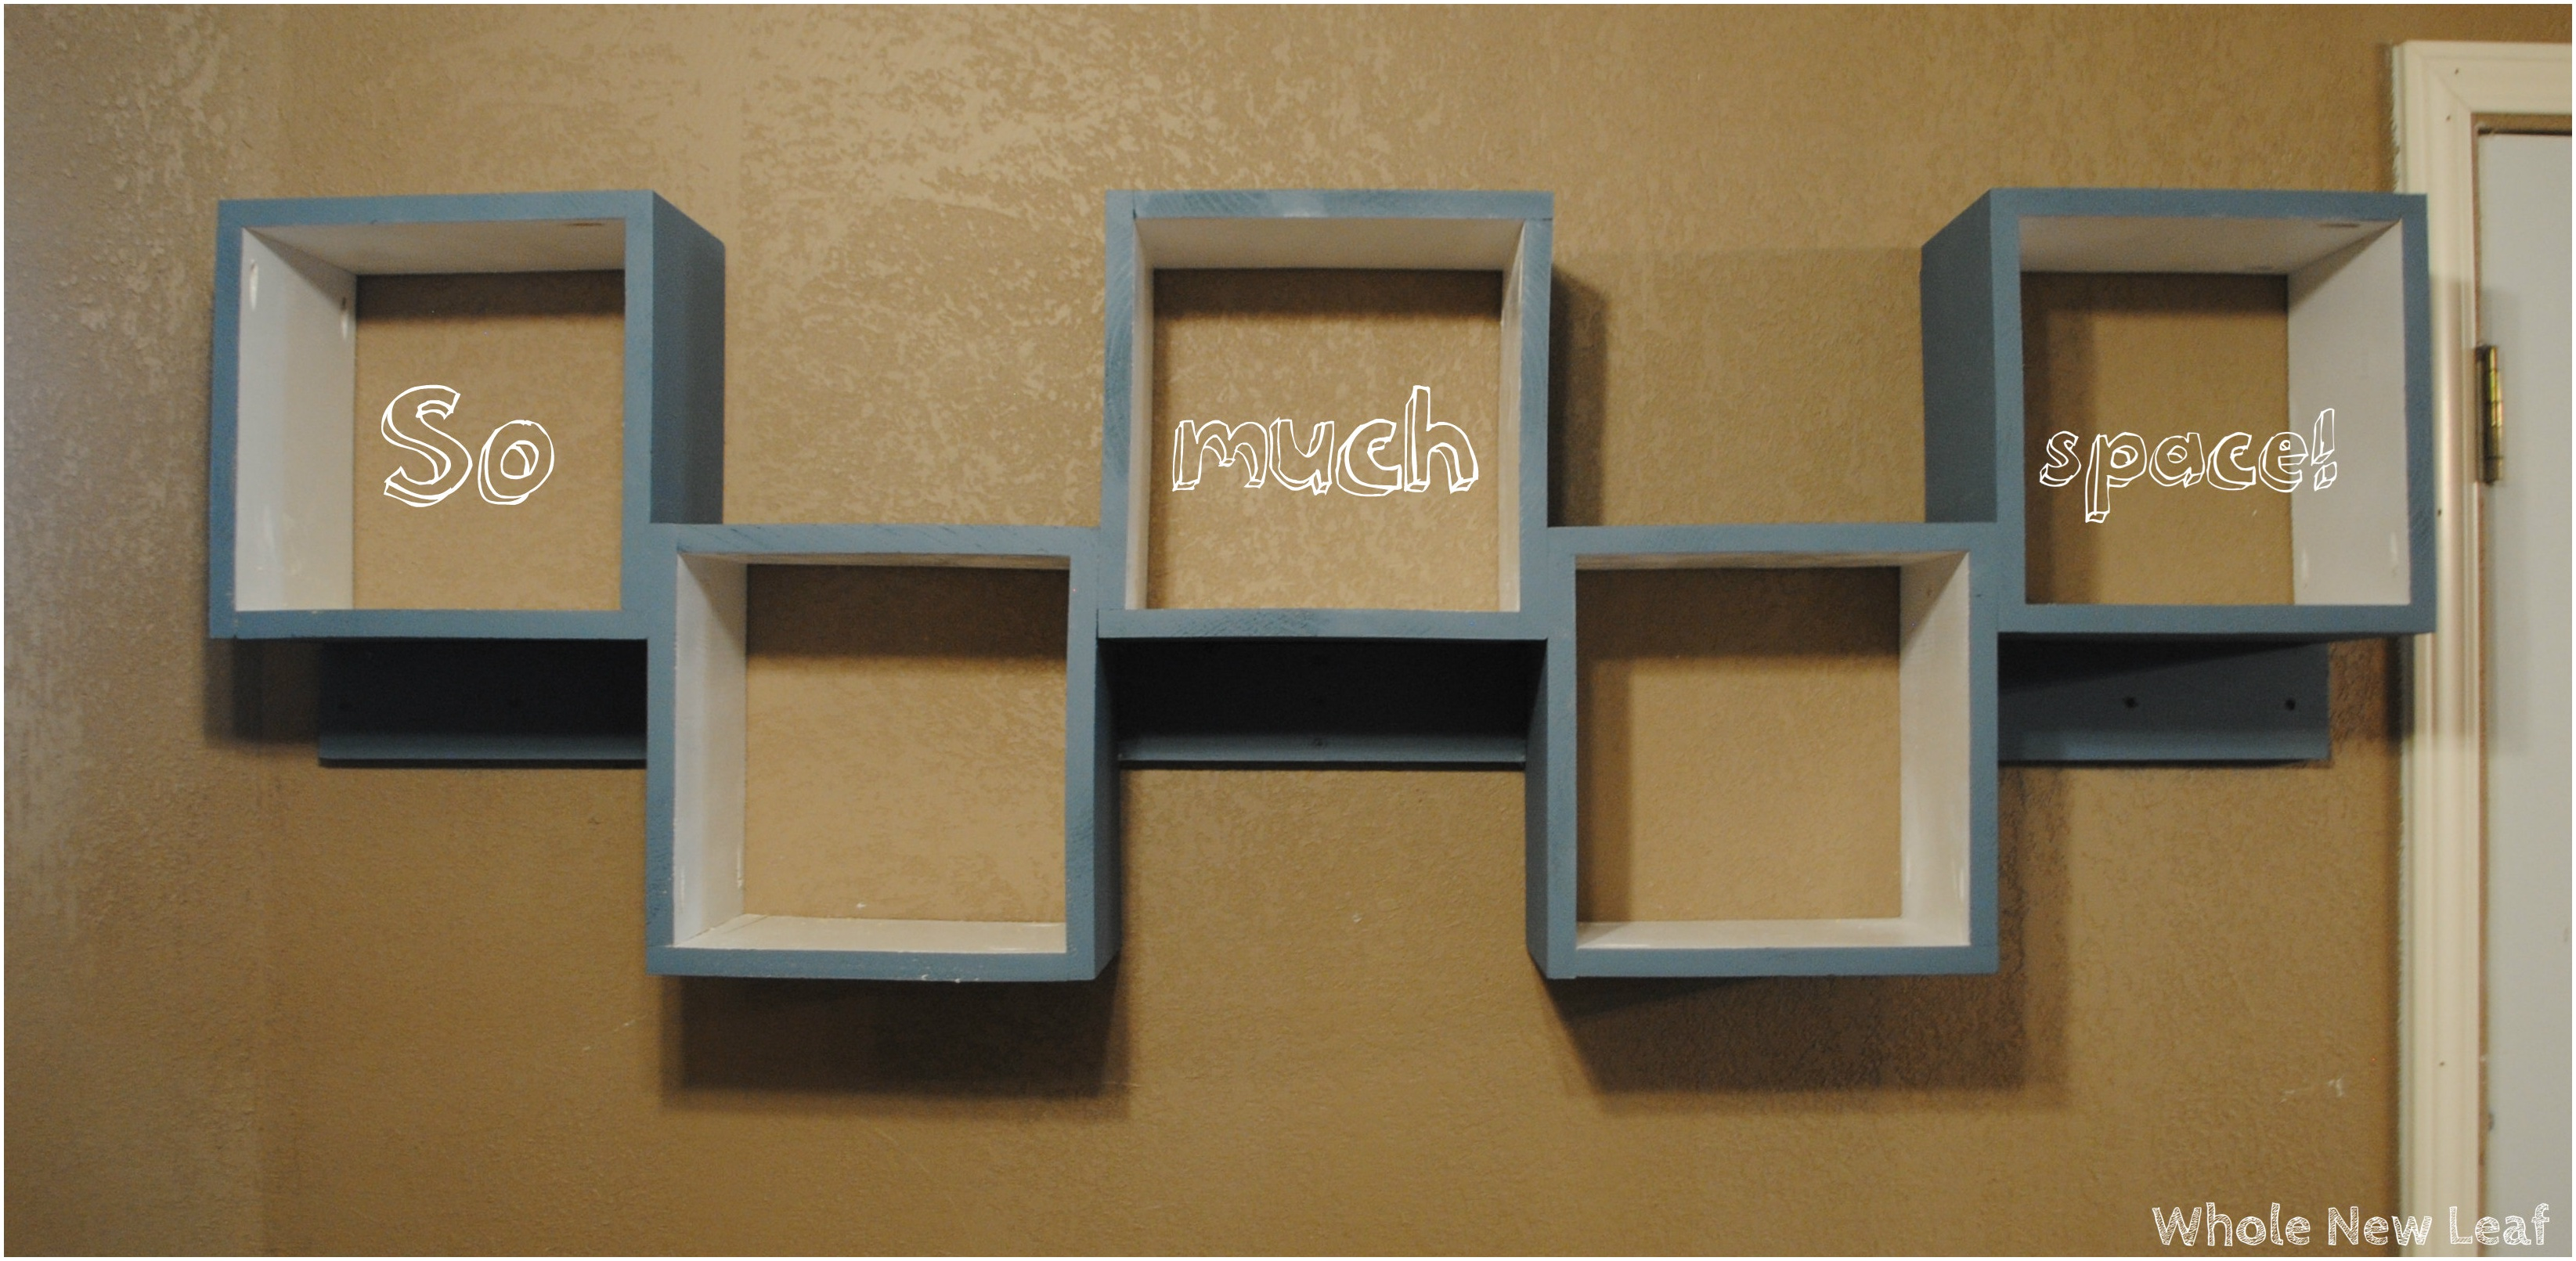 Attractive wall mounted cube shelves full image for wall storage cubes canada 10 images about shelving on hxumorz